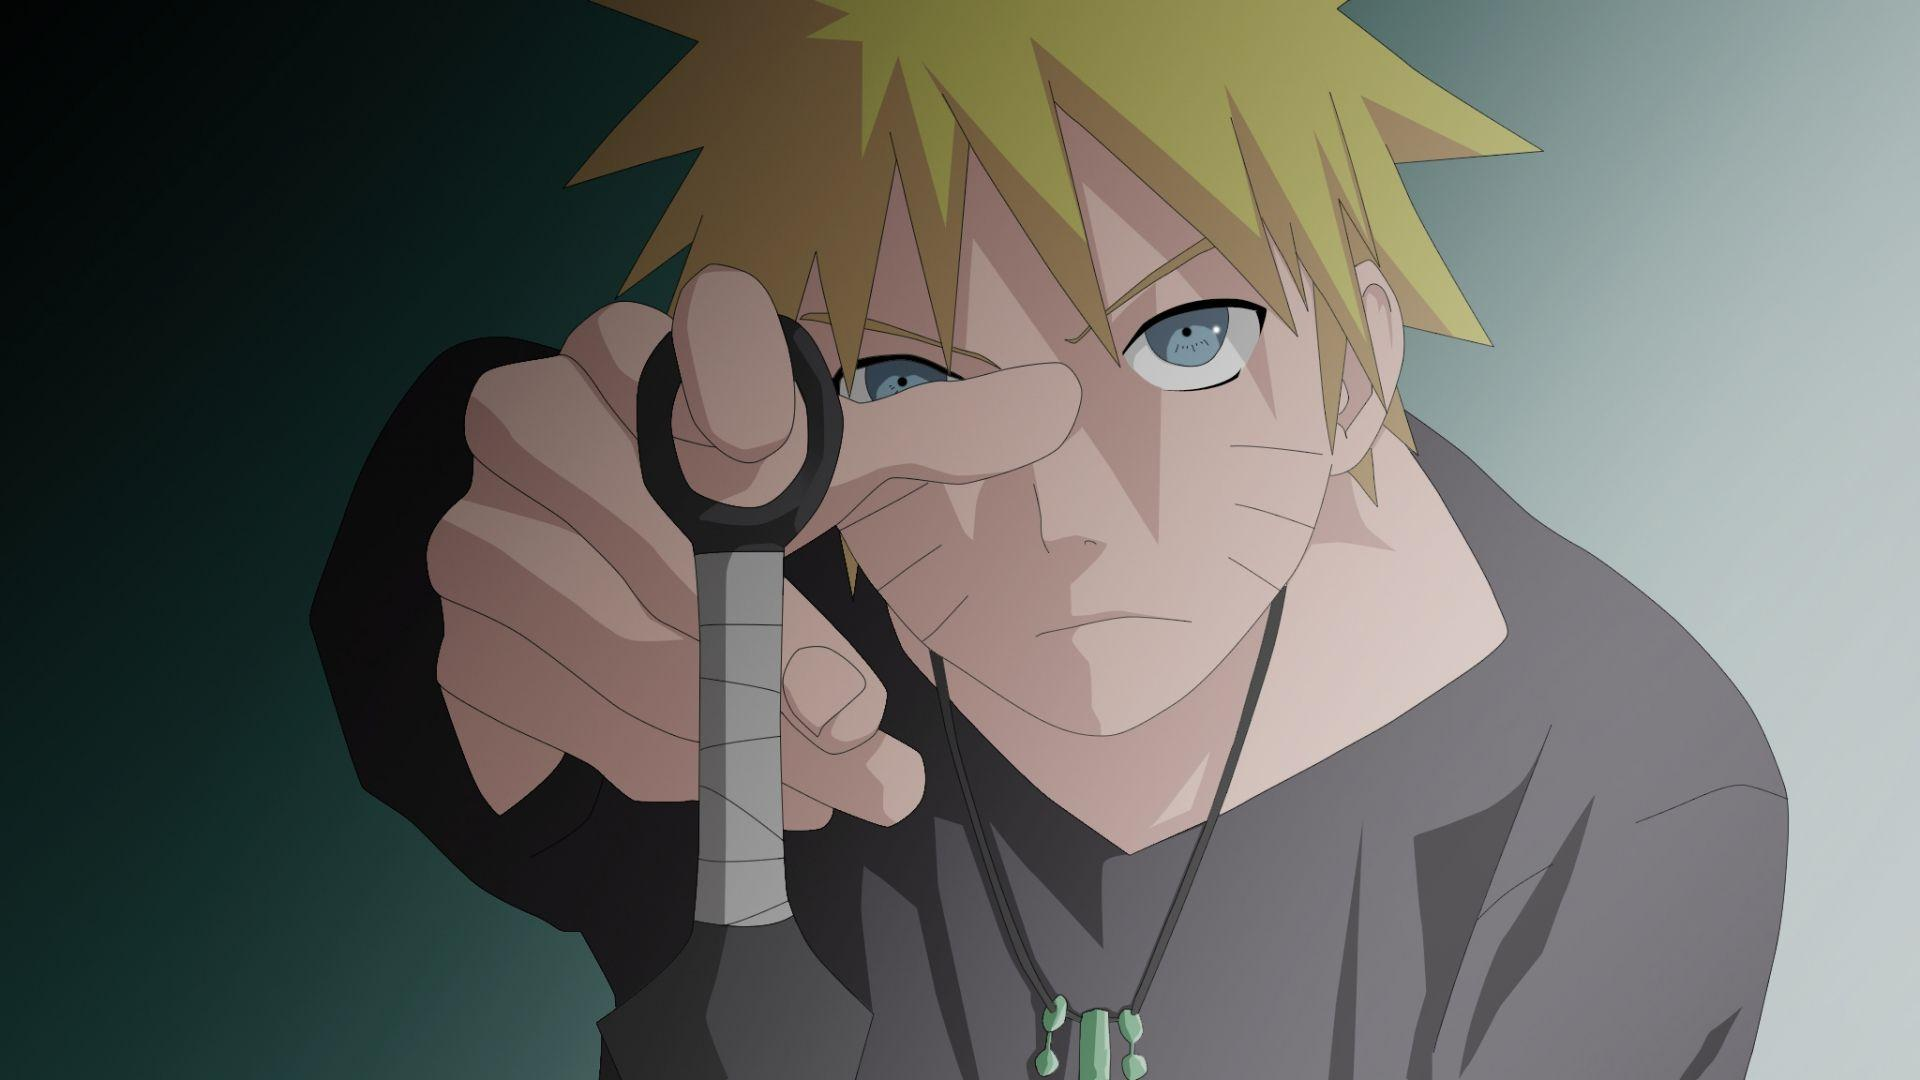 Wallpapers For > Naruto Wallpapers Hd 1920x1080